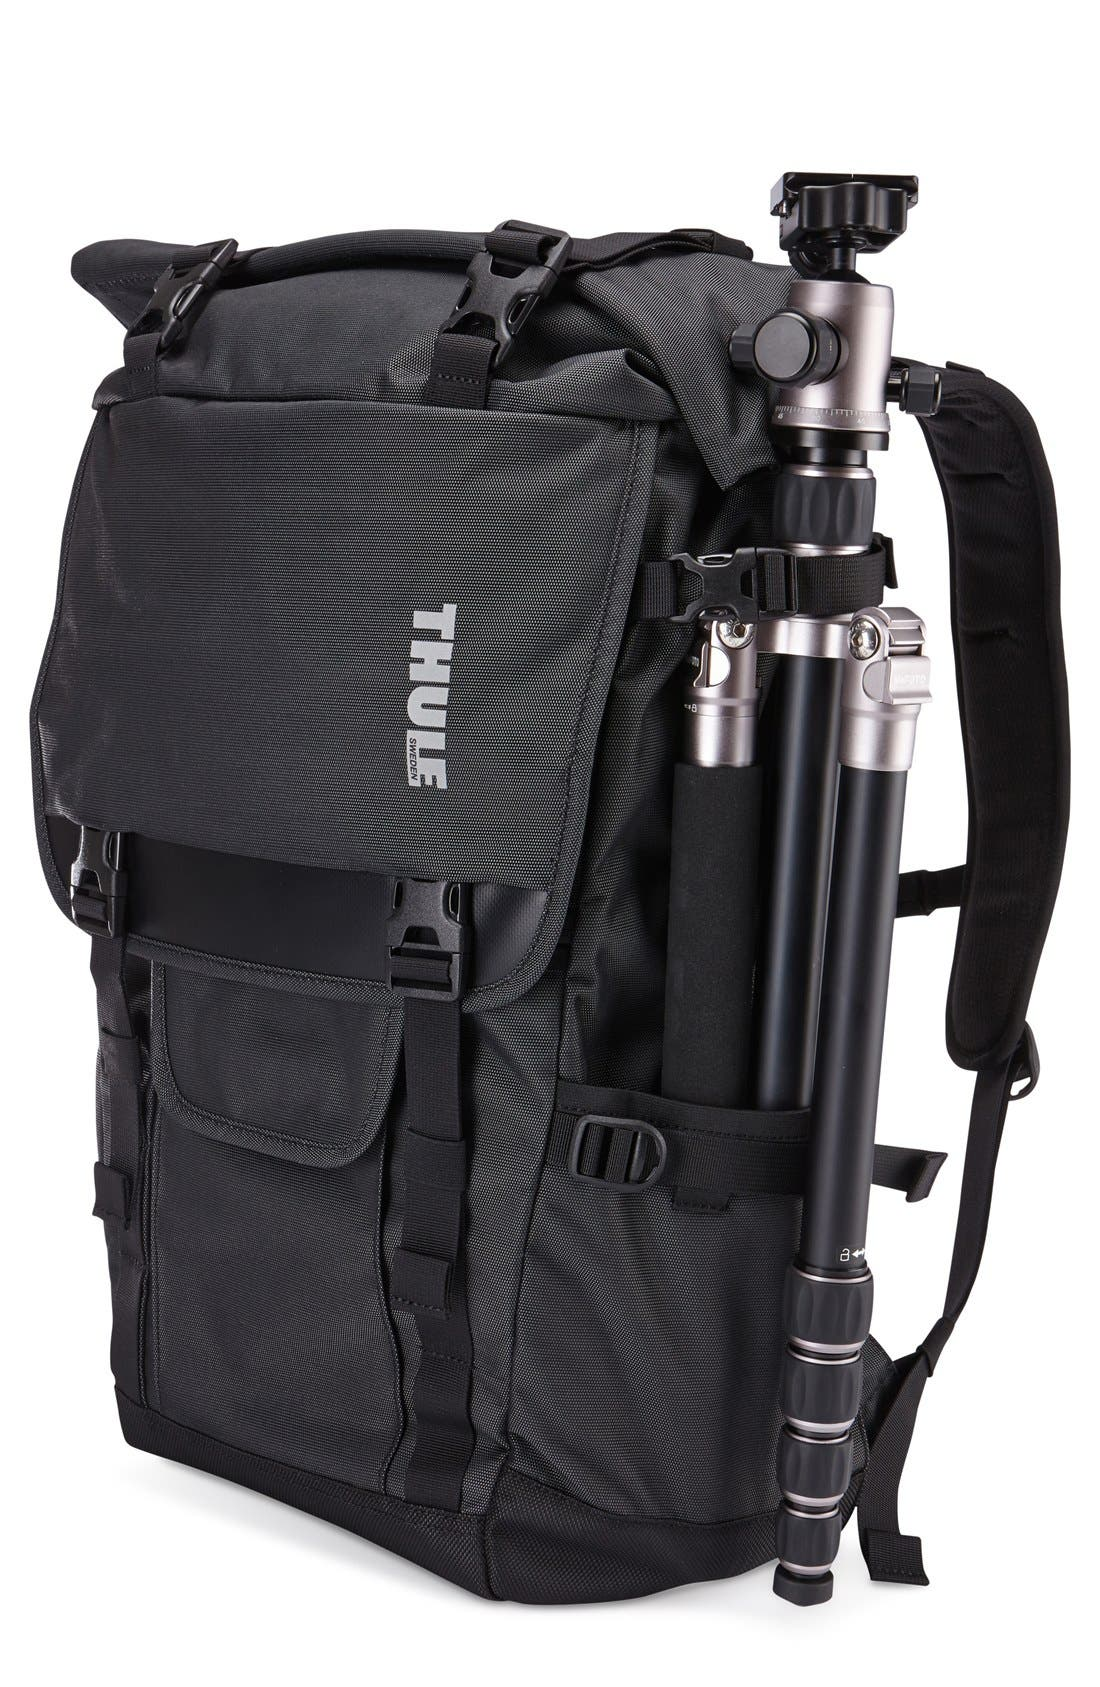 Thule 'Covert' DSLR Backpack